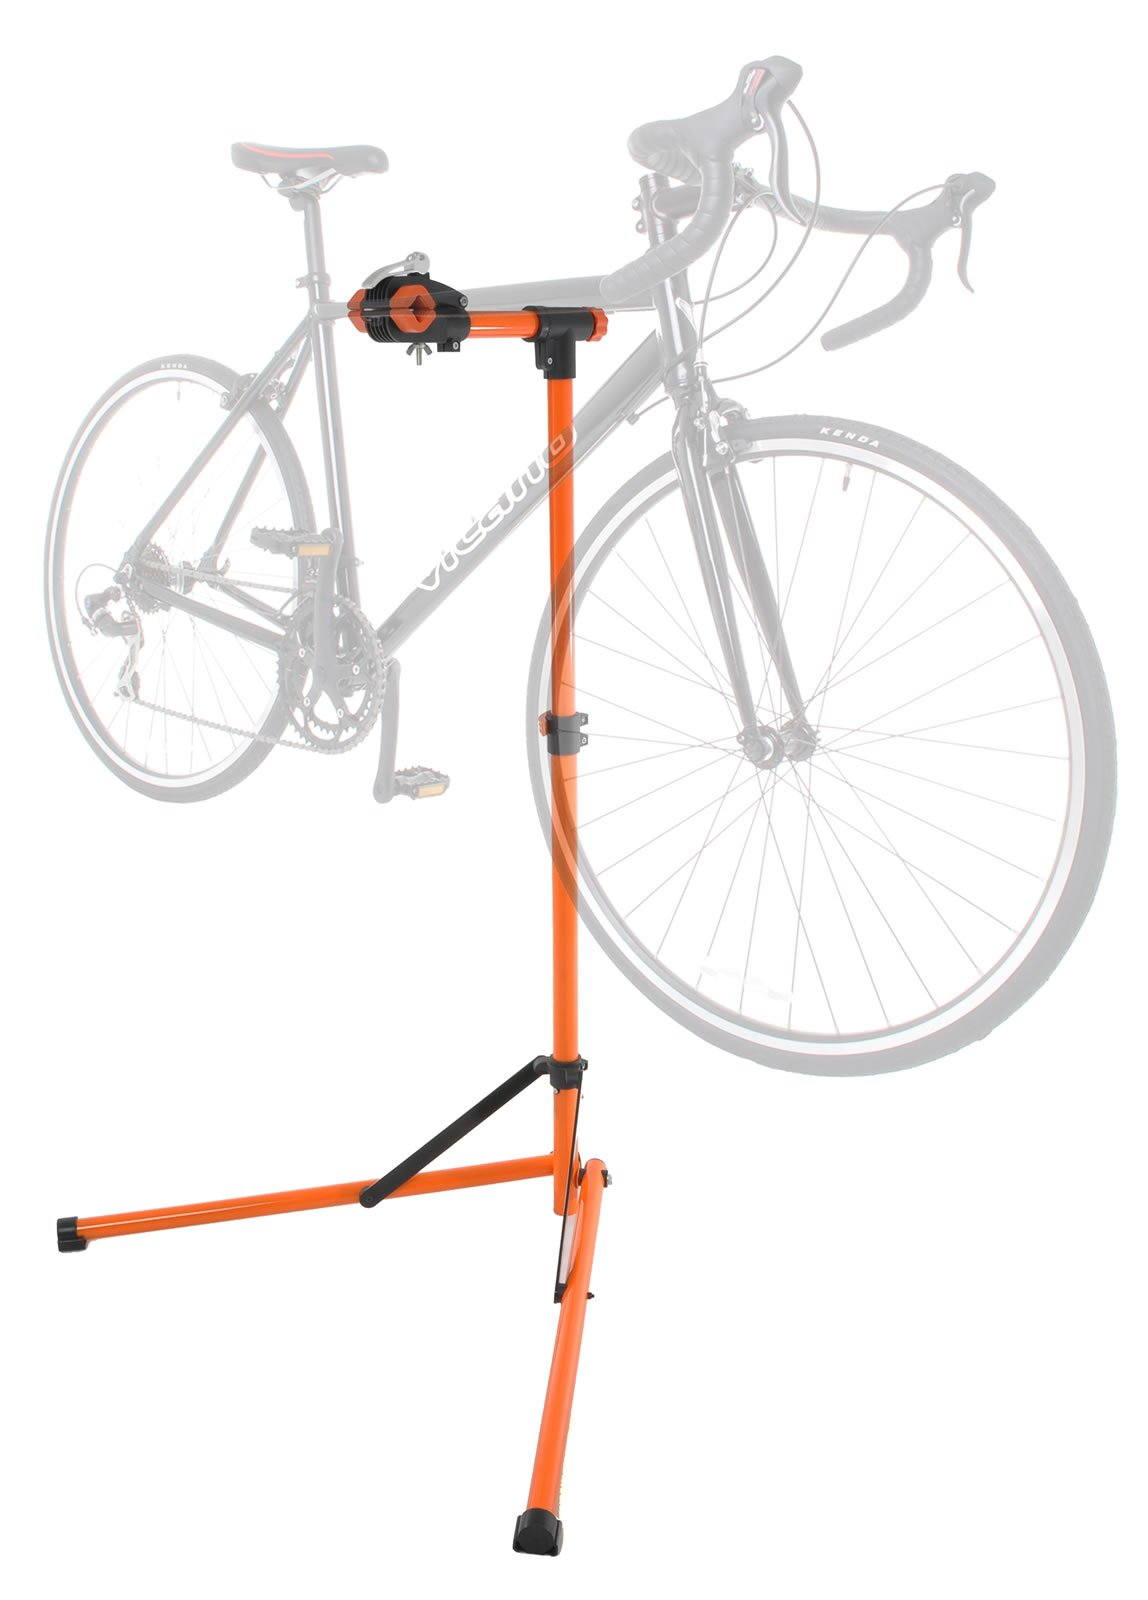 Conquer PRO Portable Mechanic Bike Repair Stand Bicycle Workstand by Conquer